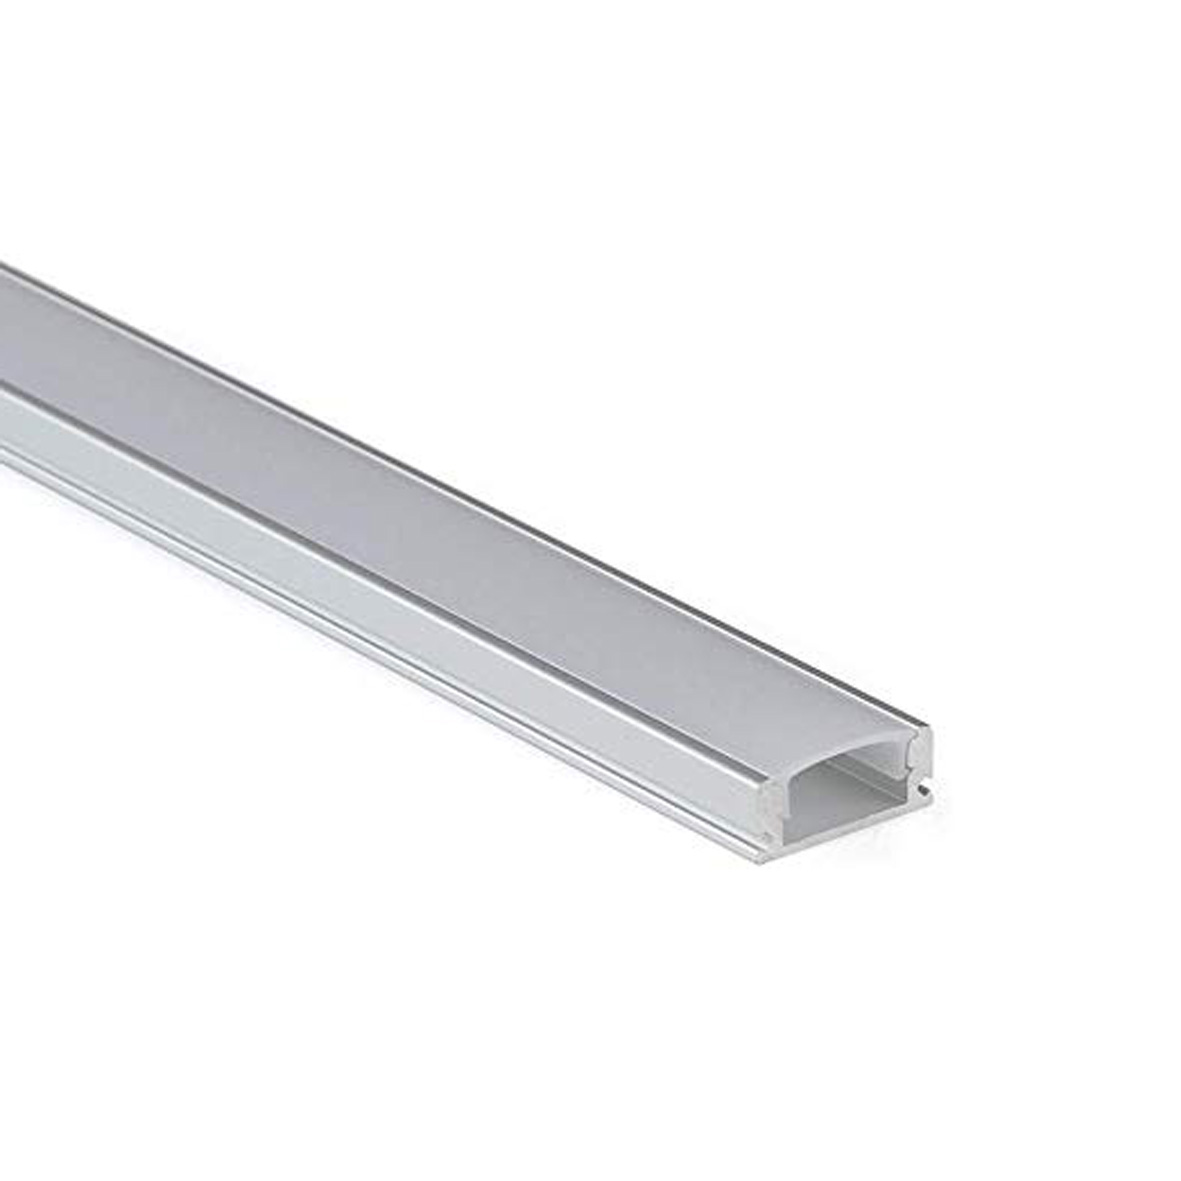 Aluminum profile, Flat-12mm, with inserts, 2m for led Strip BAR-15-2M